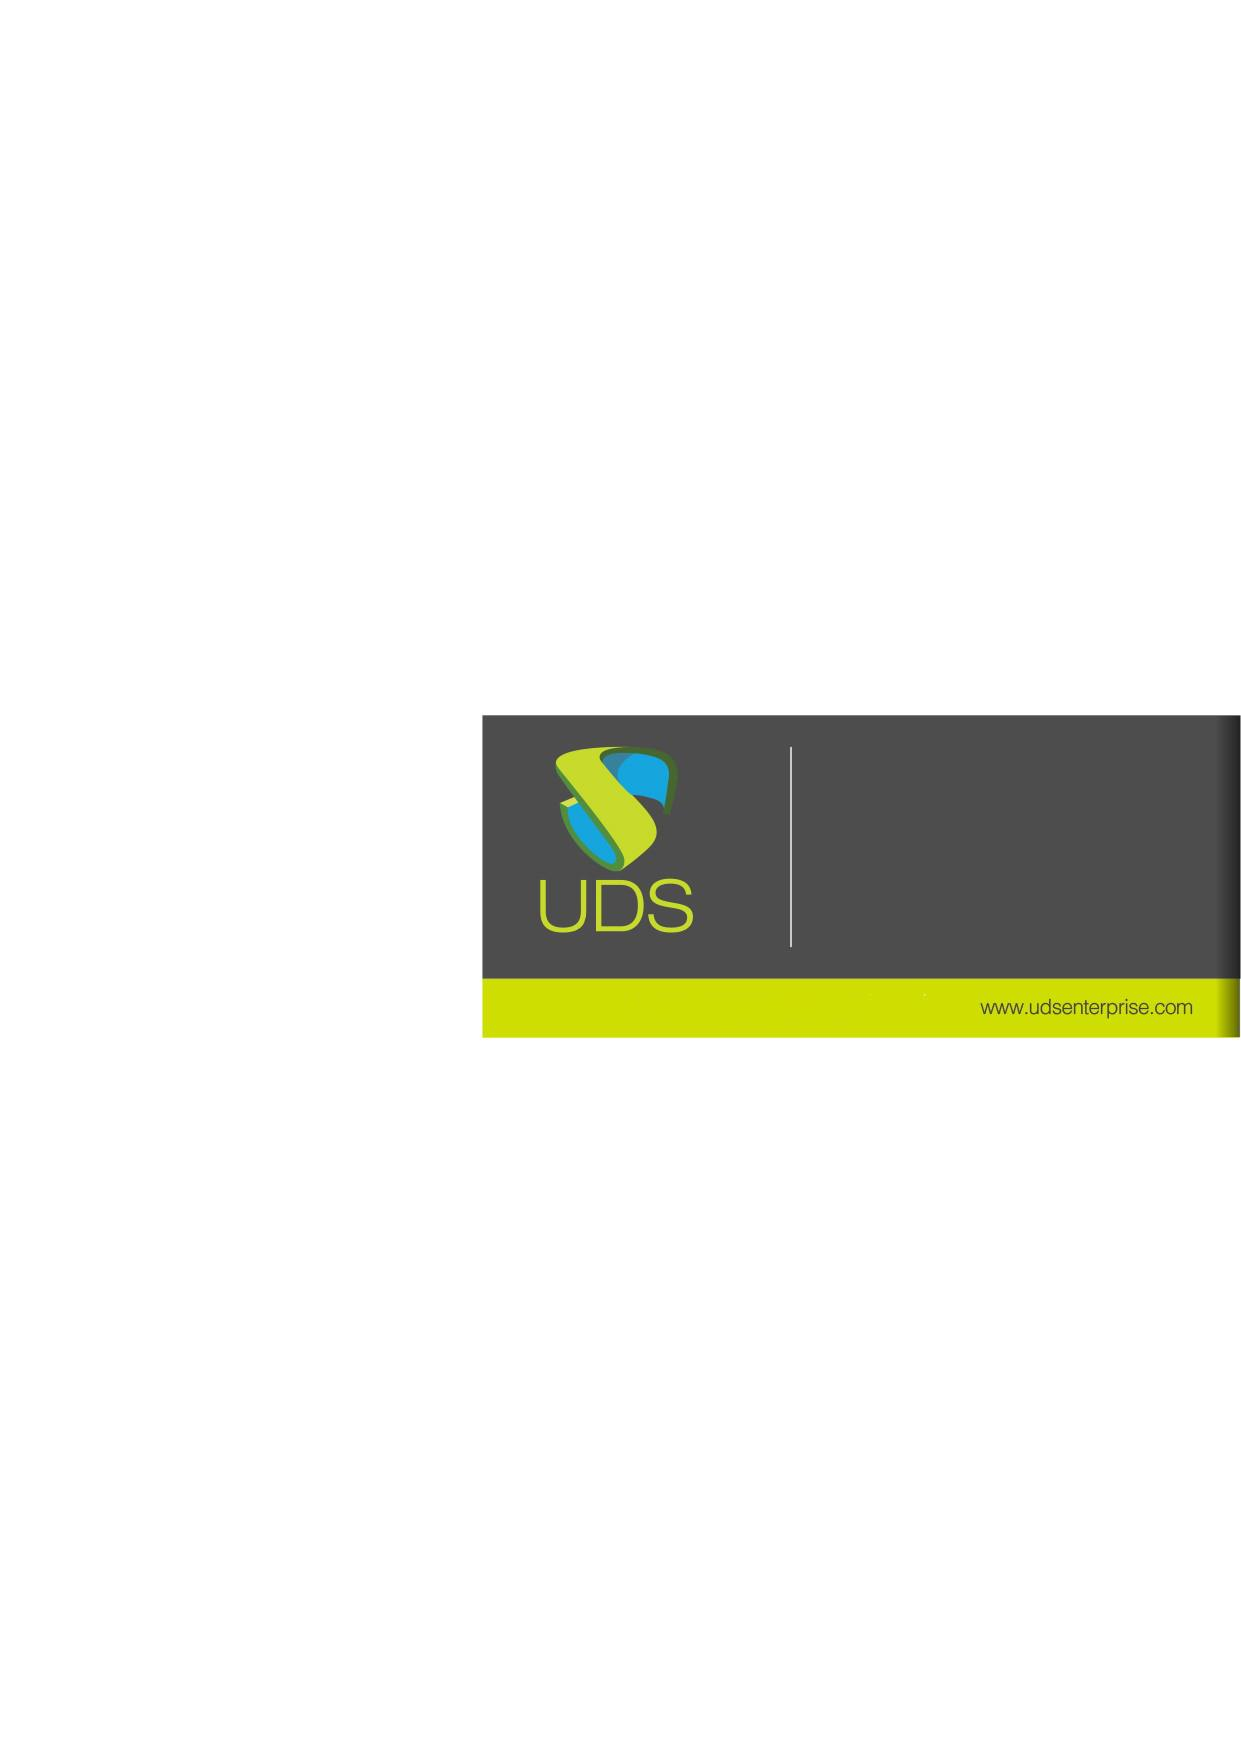 Manual de Integración de UDS